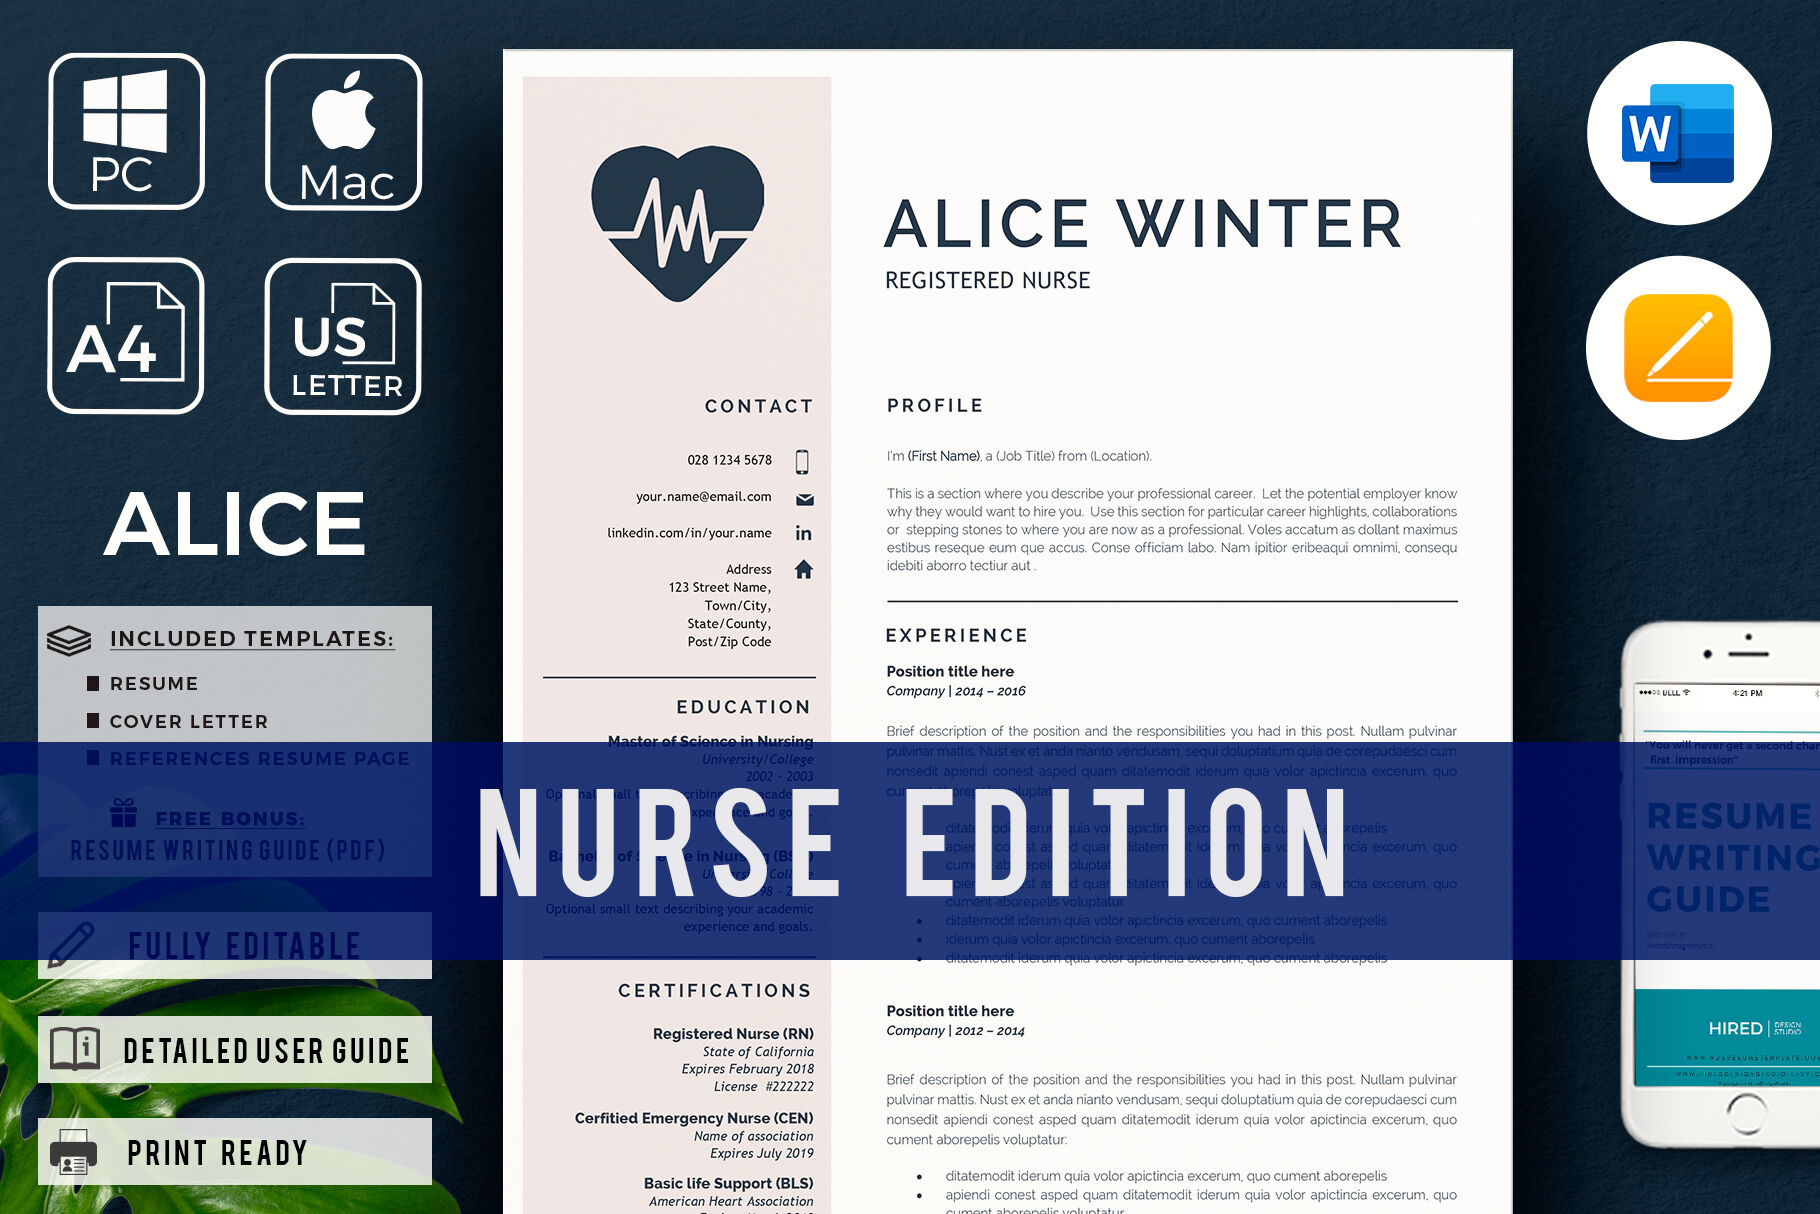 Rn Nurse Resume Template With References And Cover Letter By Hiredds Thehungryjpeg Com